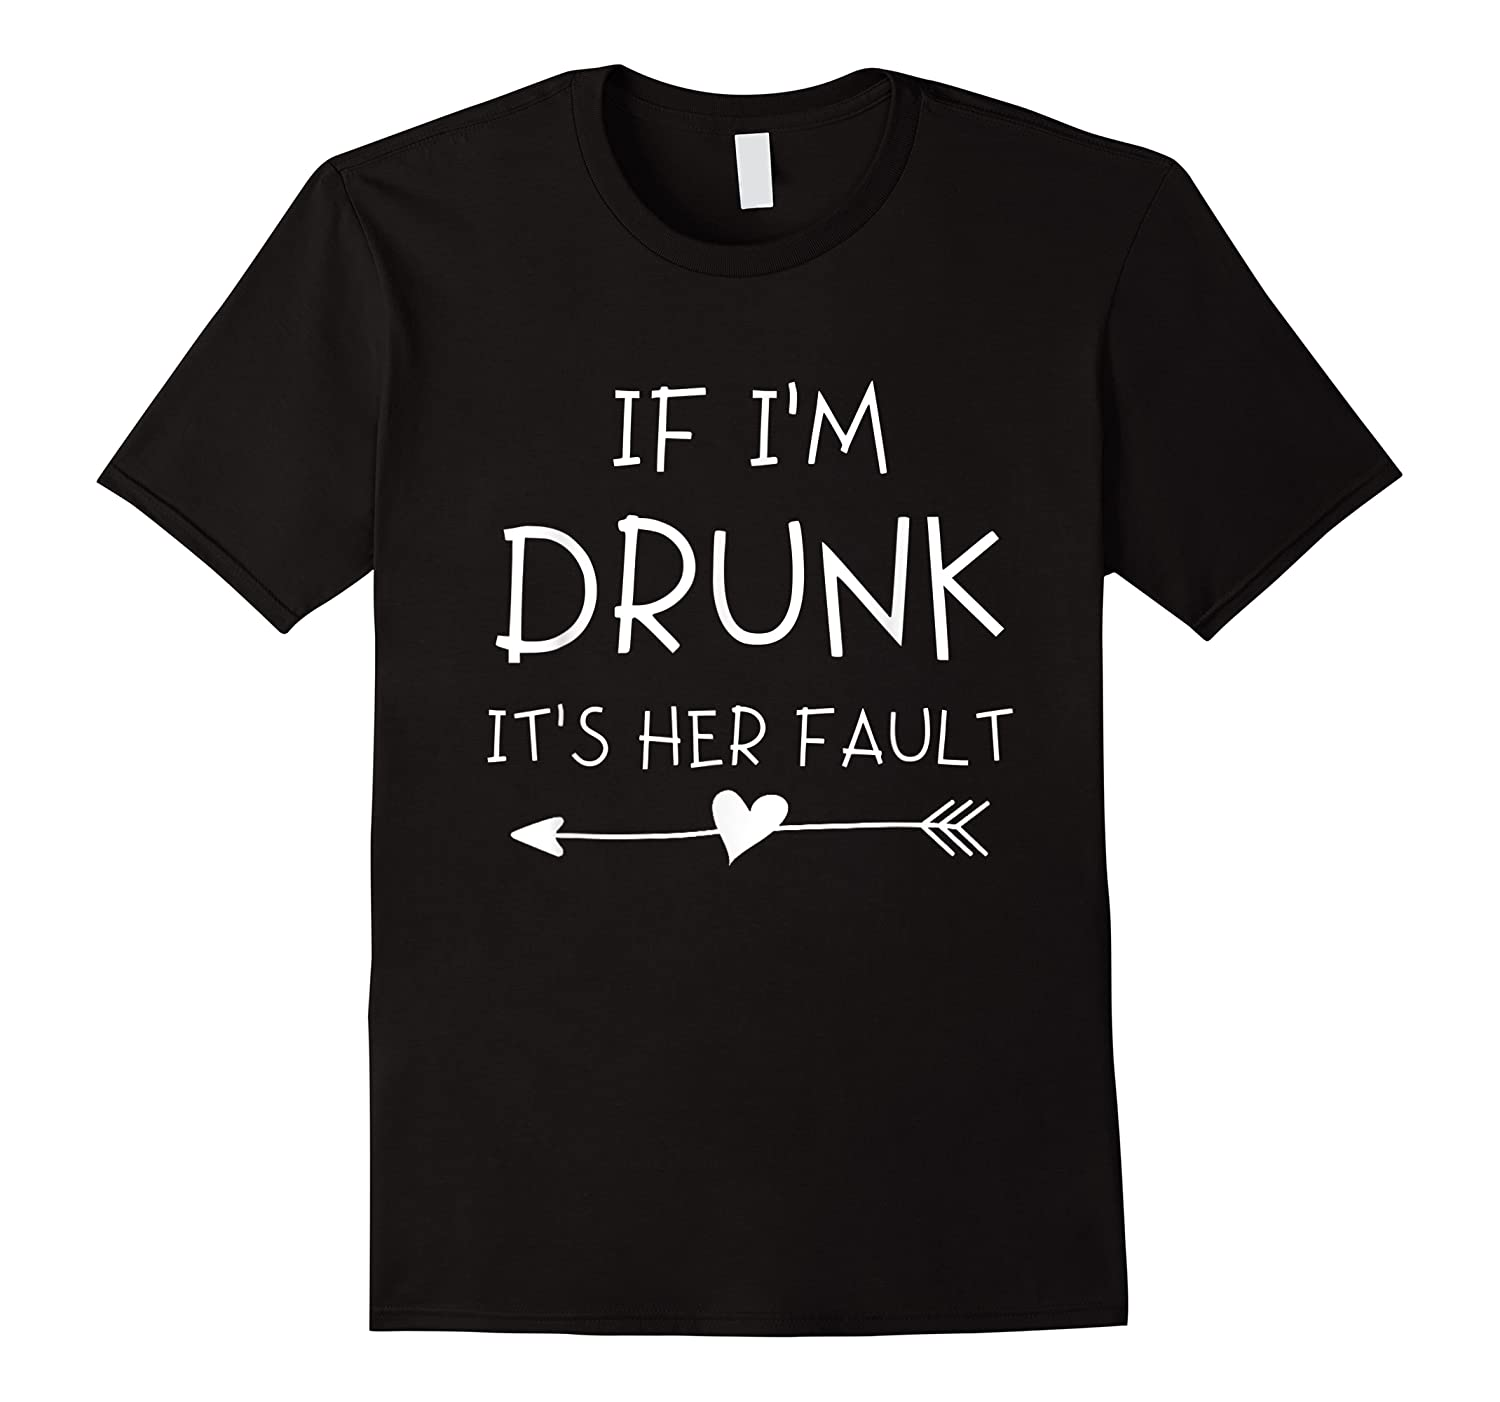 If I'm Drunk It's Her Fault Funny Best Friends T-shirt